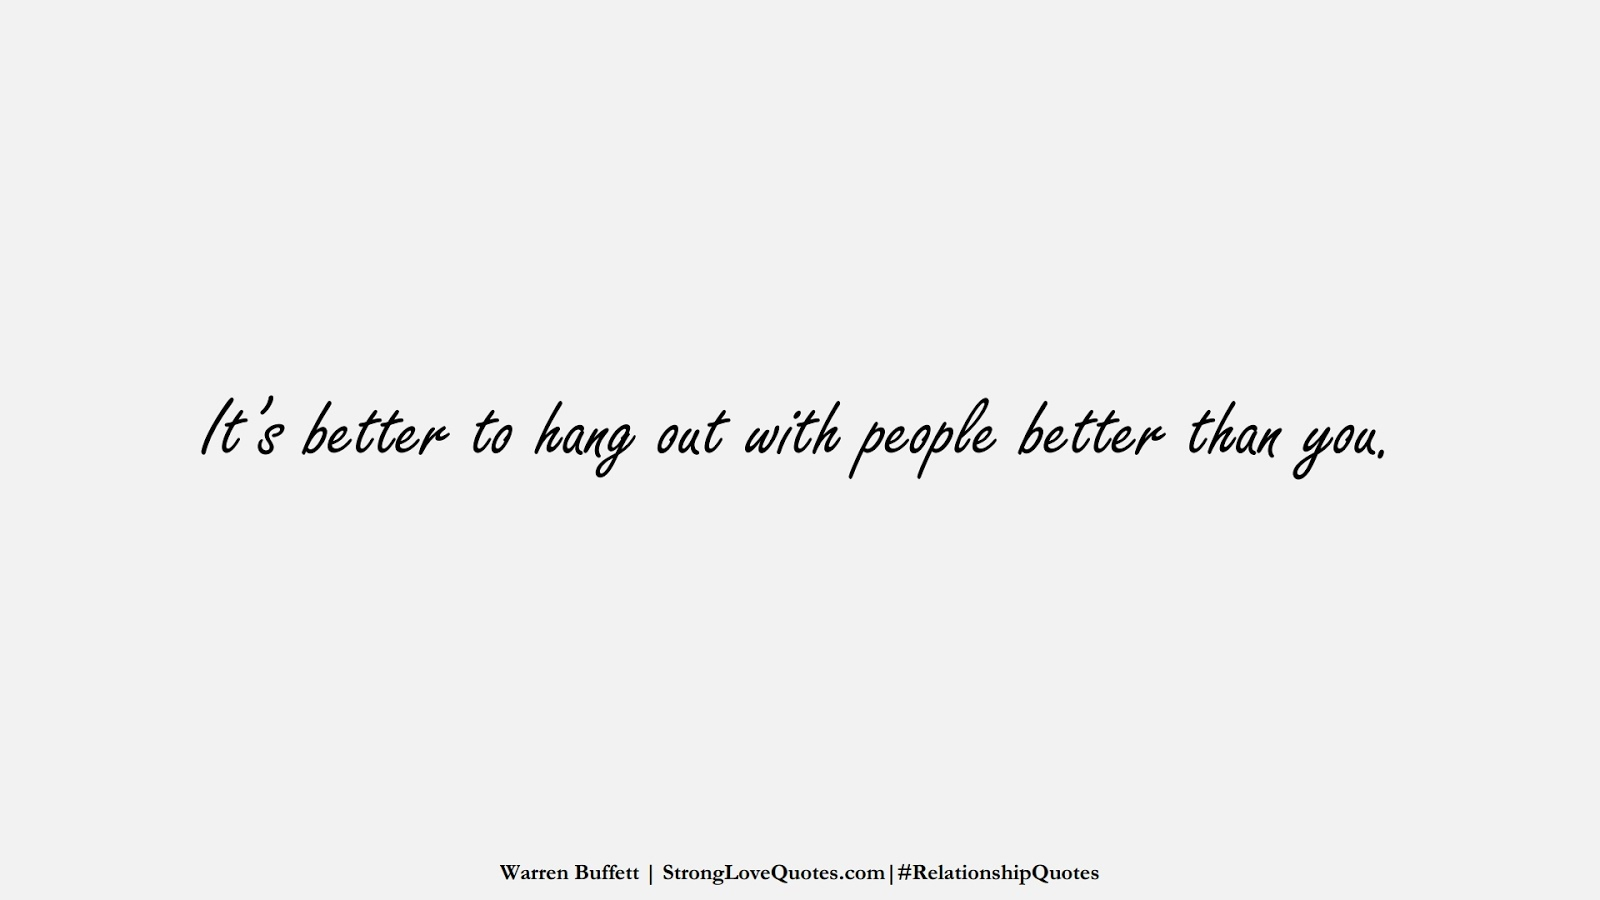 It's better to hang out with people better than you. (Warren Buffett);  #RelationshipQuotes